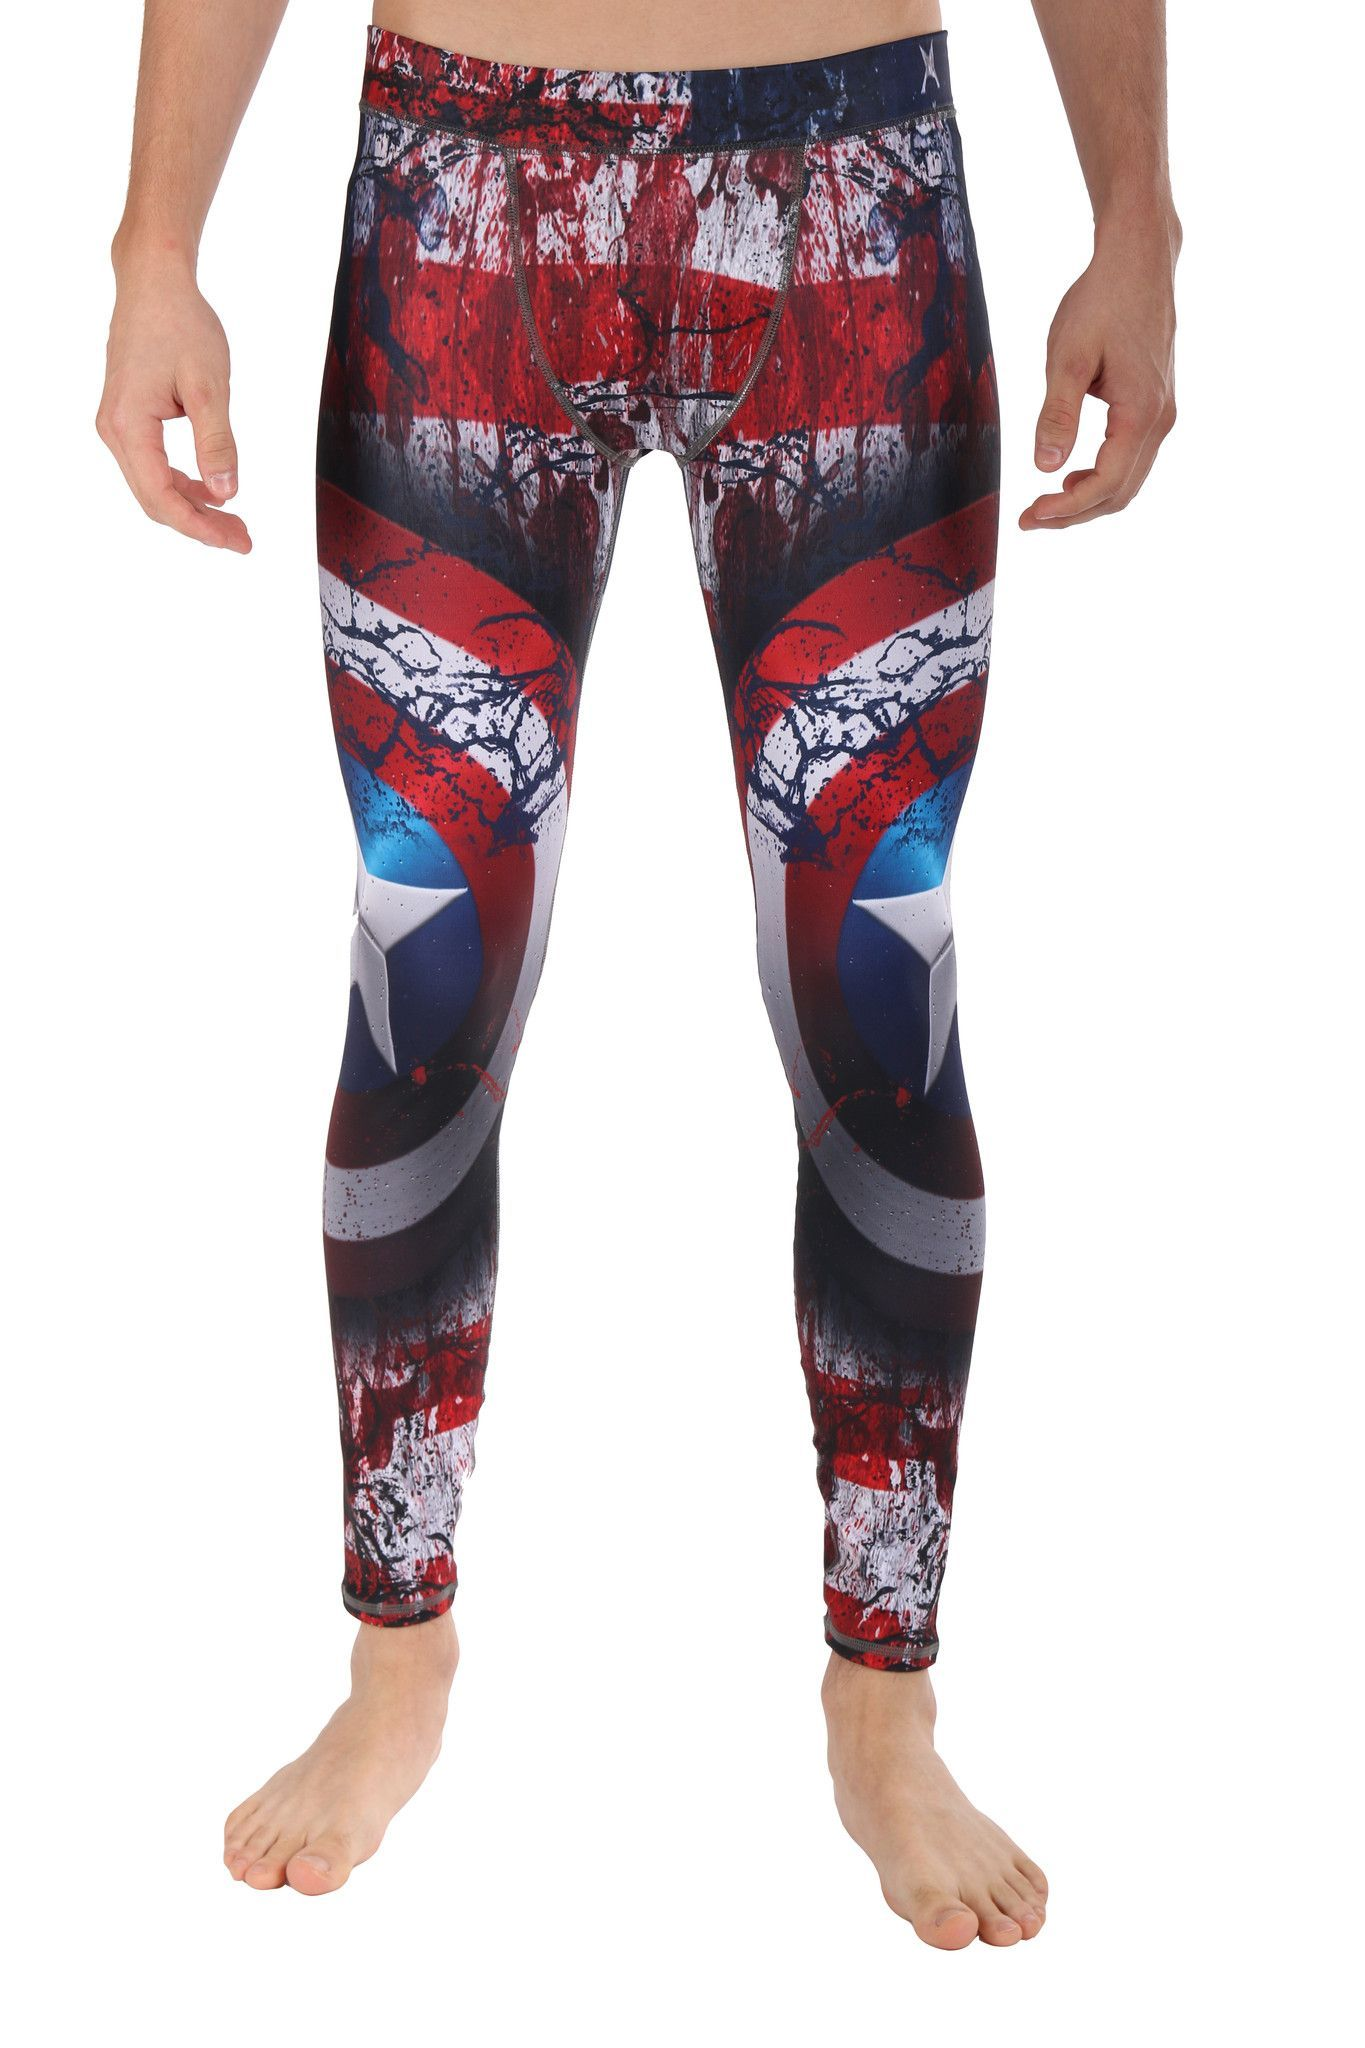 America Men S Legging In 2019 Meggings Cute Gym Outfits Sexy